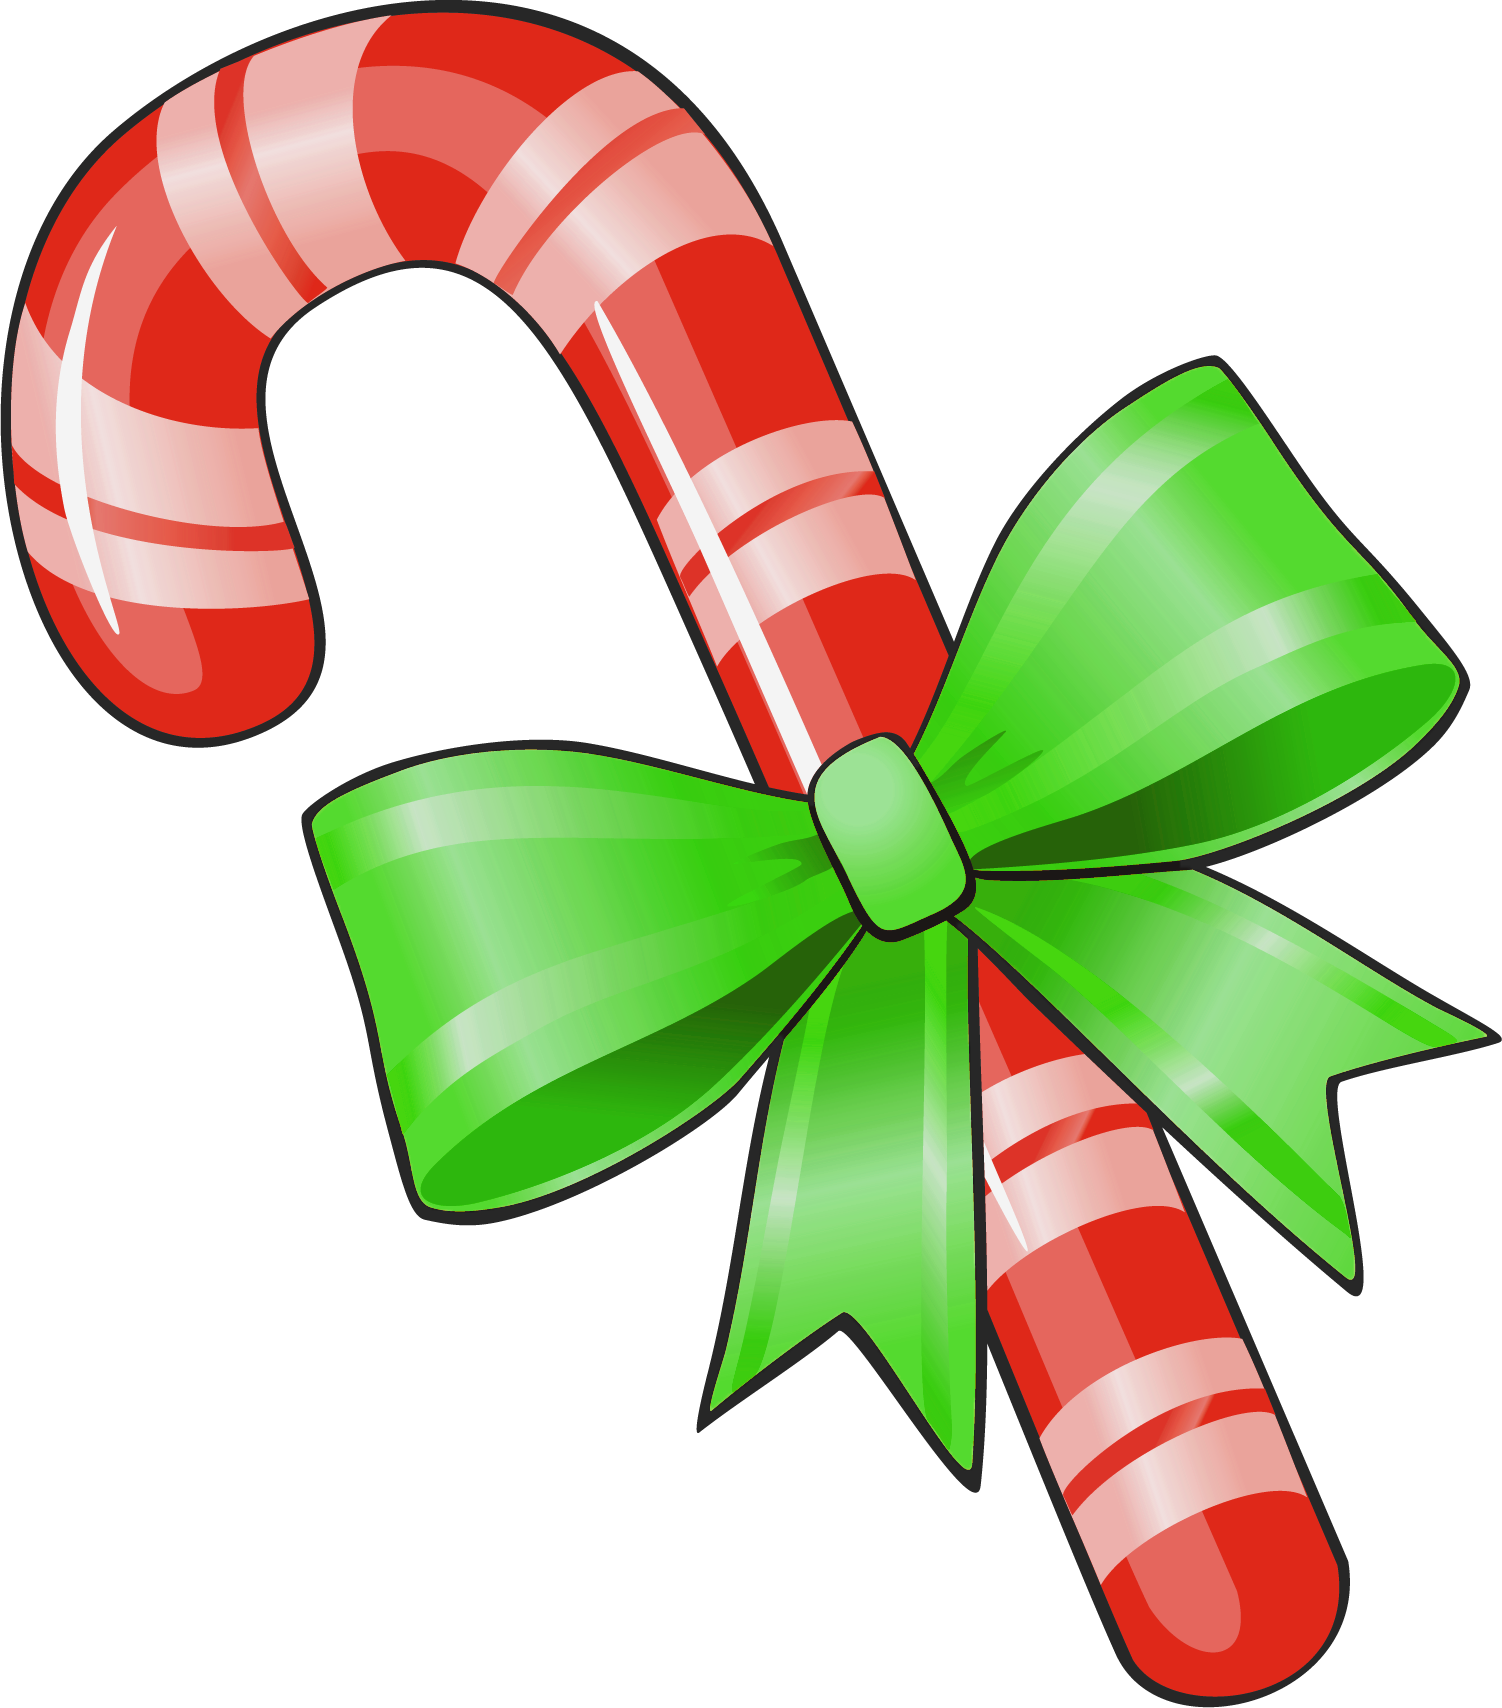 Candy Cane Clipart - Cliparts.co: cliparts.co/candy-cane-clipart